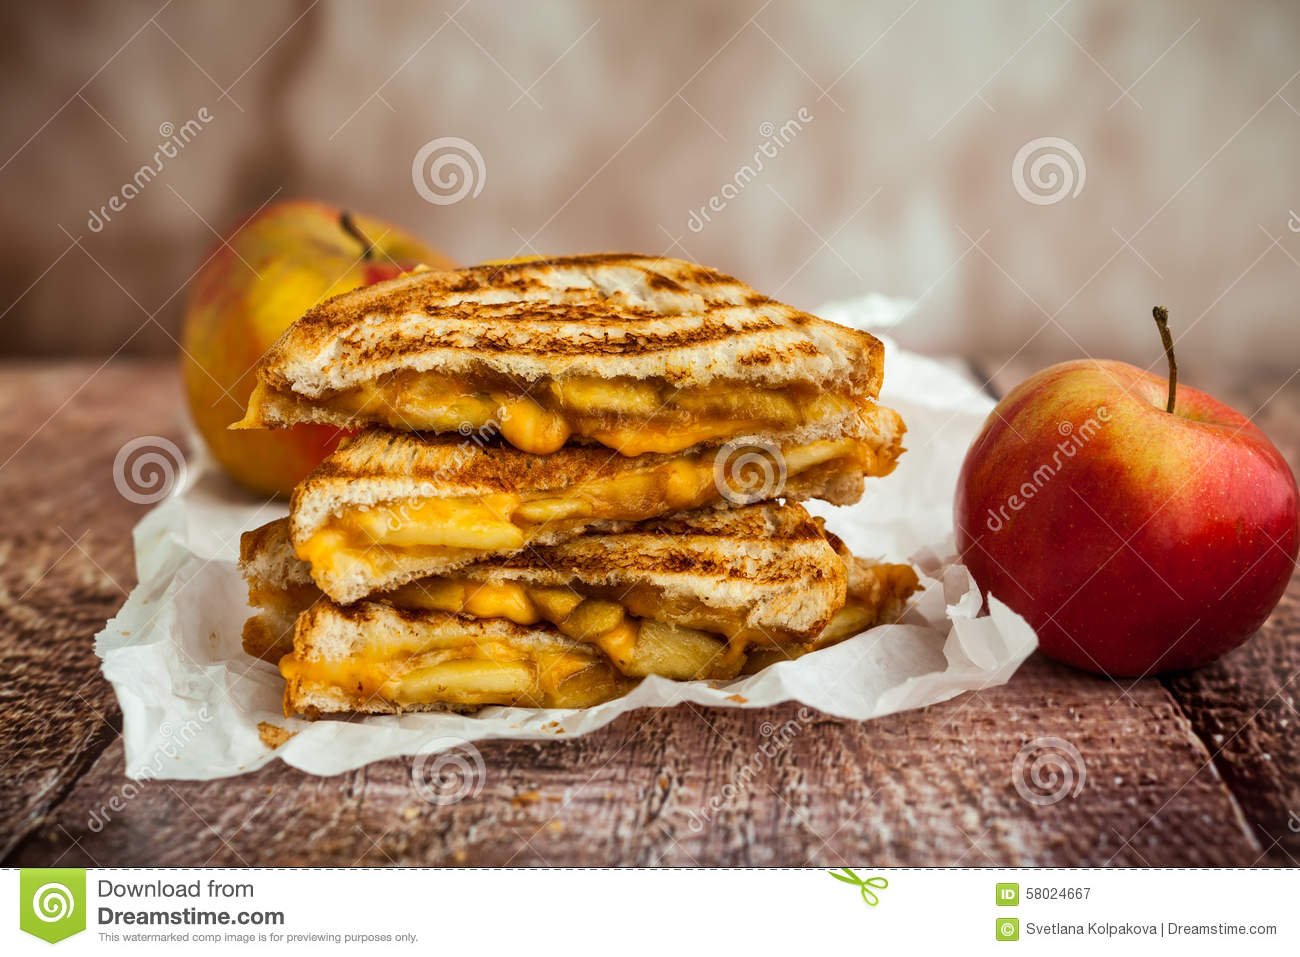 Grilled Cheese Sandwich Stock Photo - Image: 58024667